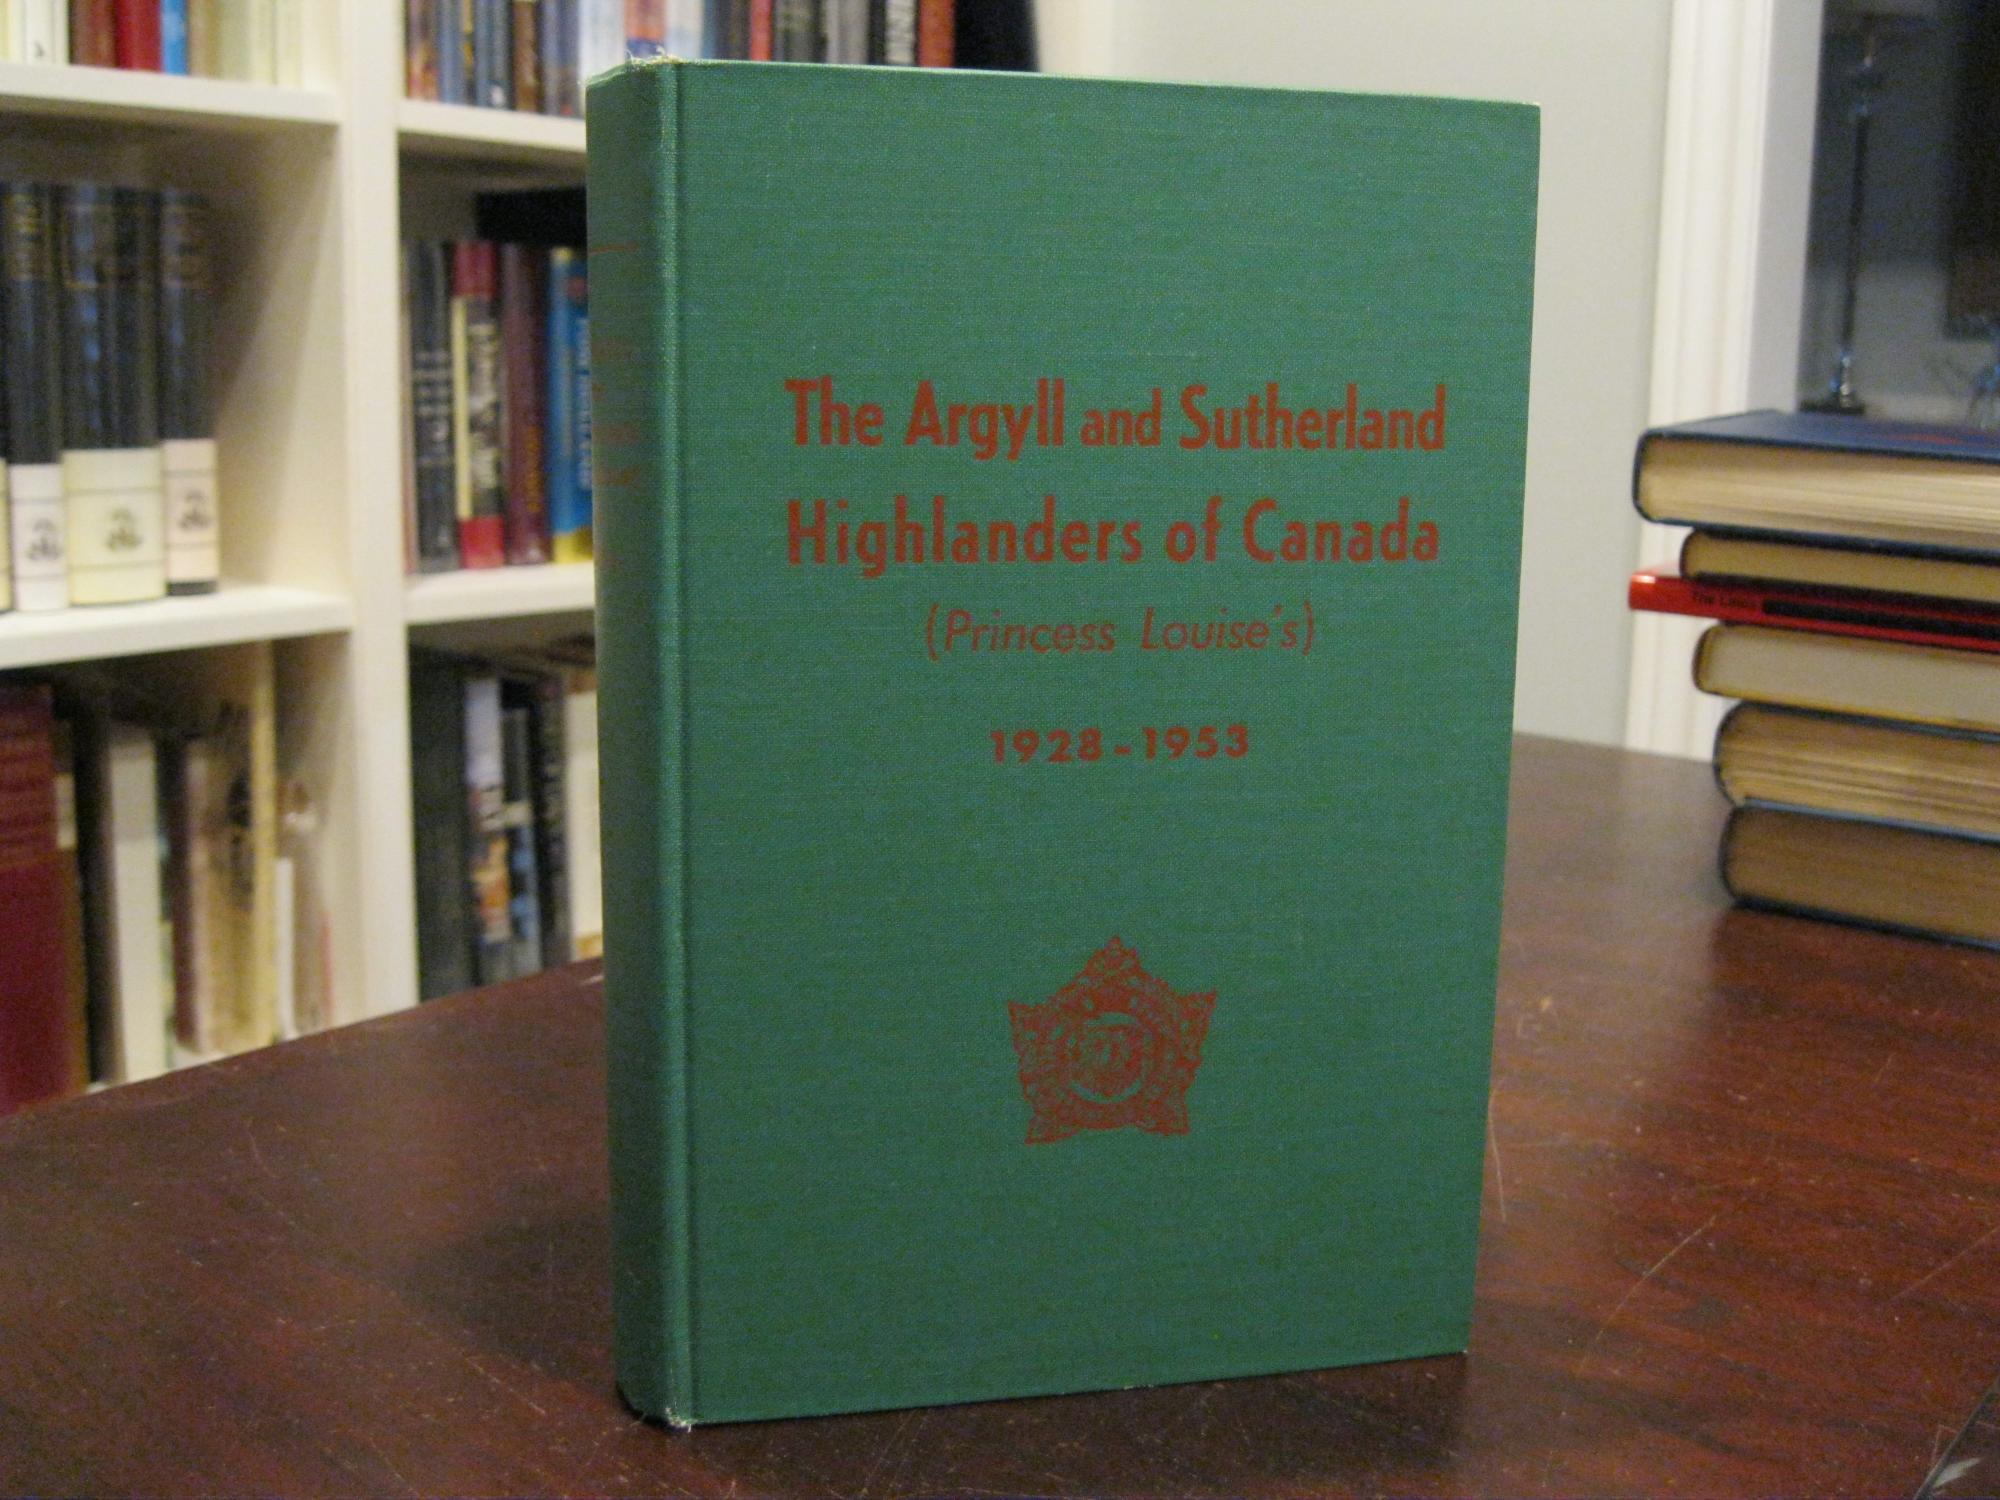 THE_ARGYLL_AND_SUTHERLAND_HIGHLANDERS_OF_CANADA_(PRINCESS_LOUISE'S)_1928-1953_(HAMILTON)_JACKSON,_Lieut.-Col._H.M._[Very_Good]_[Hardcover]